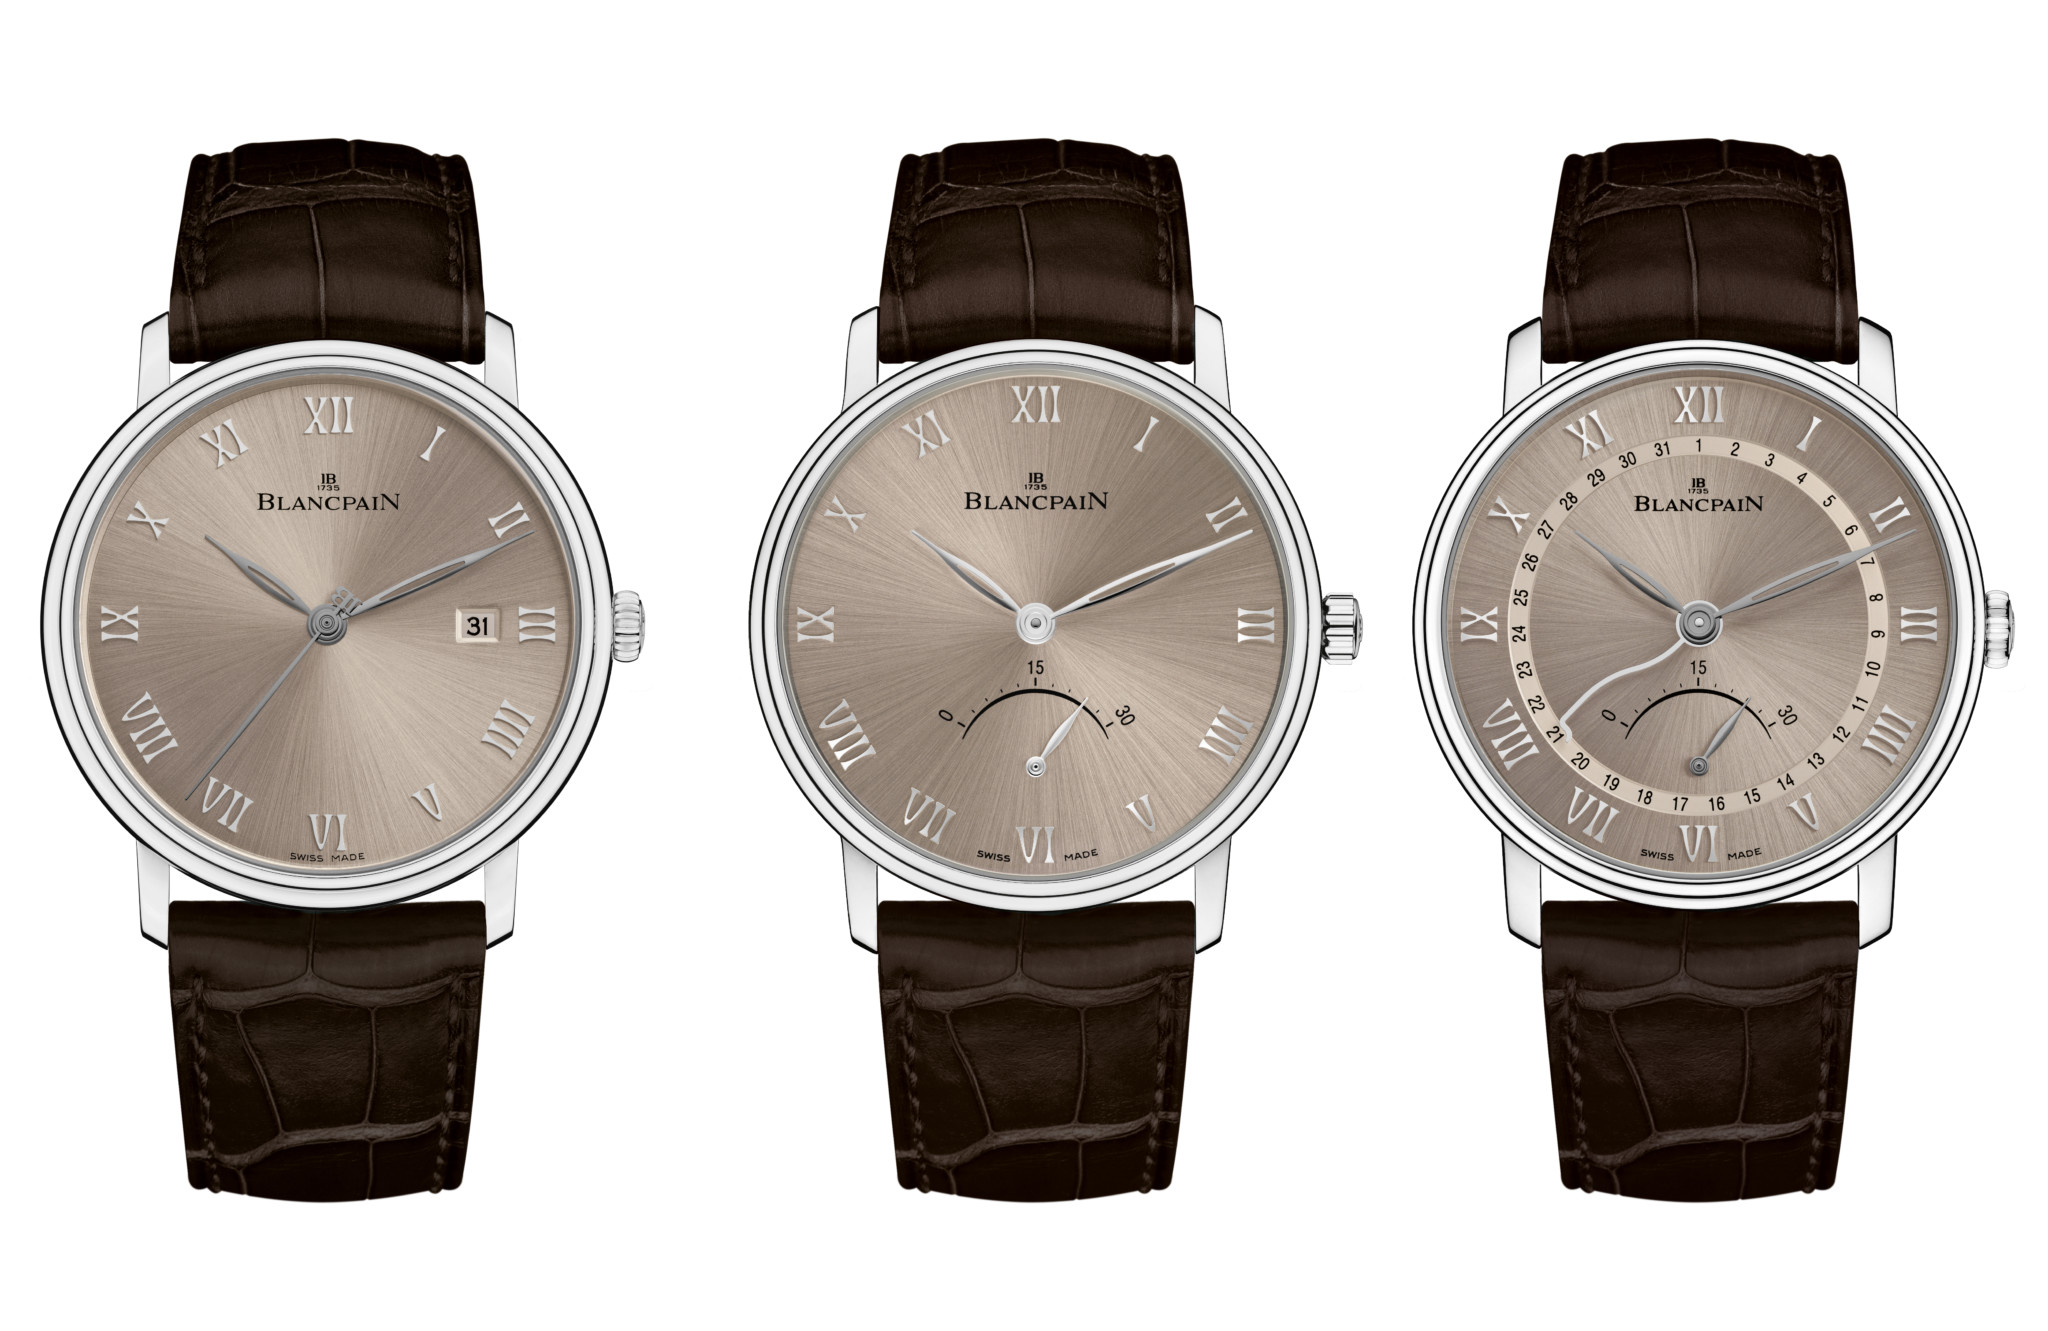 blancpain-champagne-collection